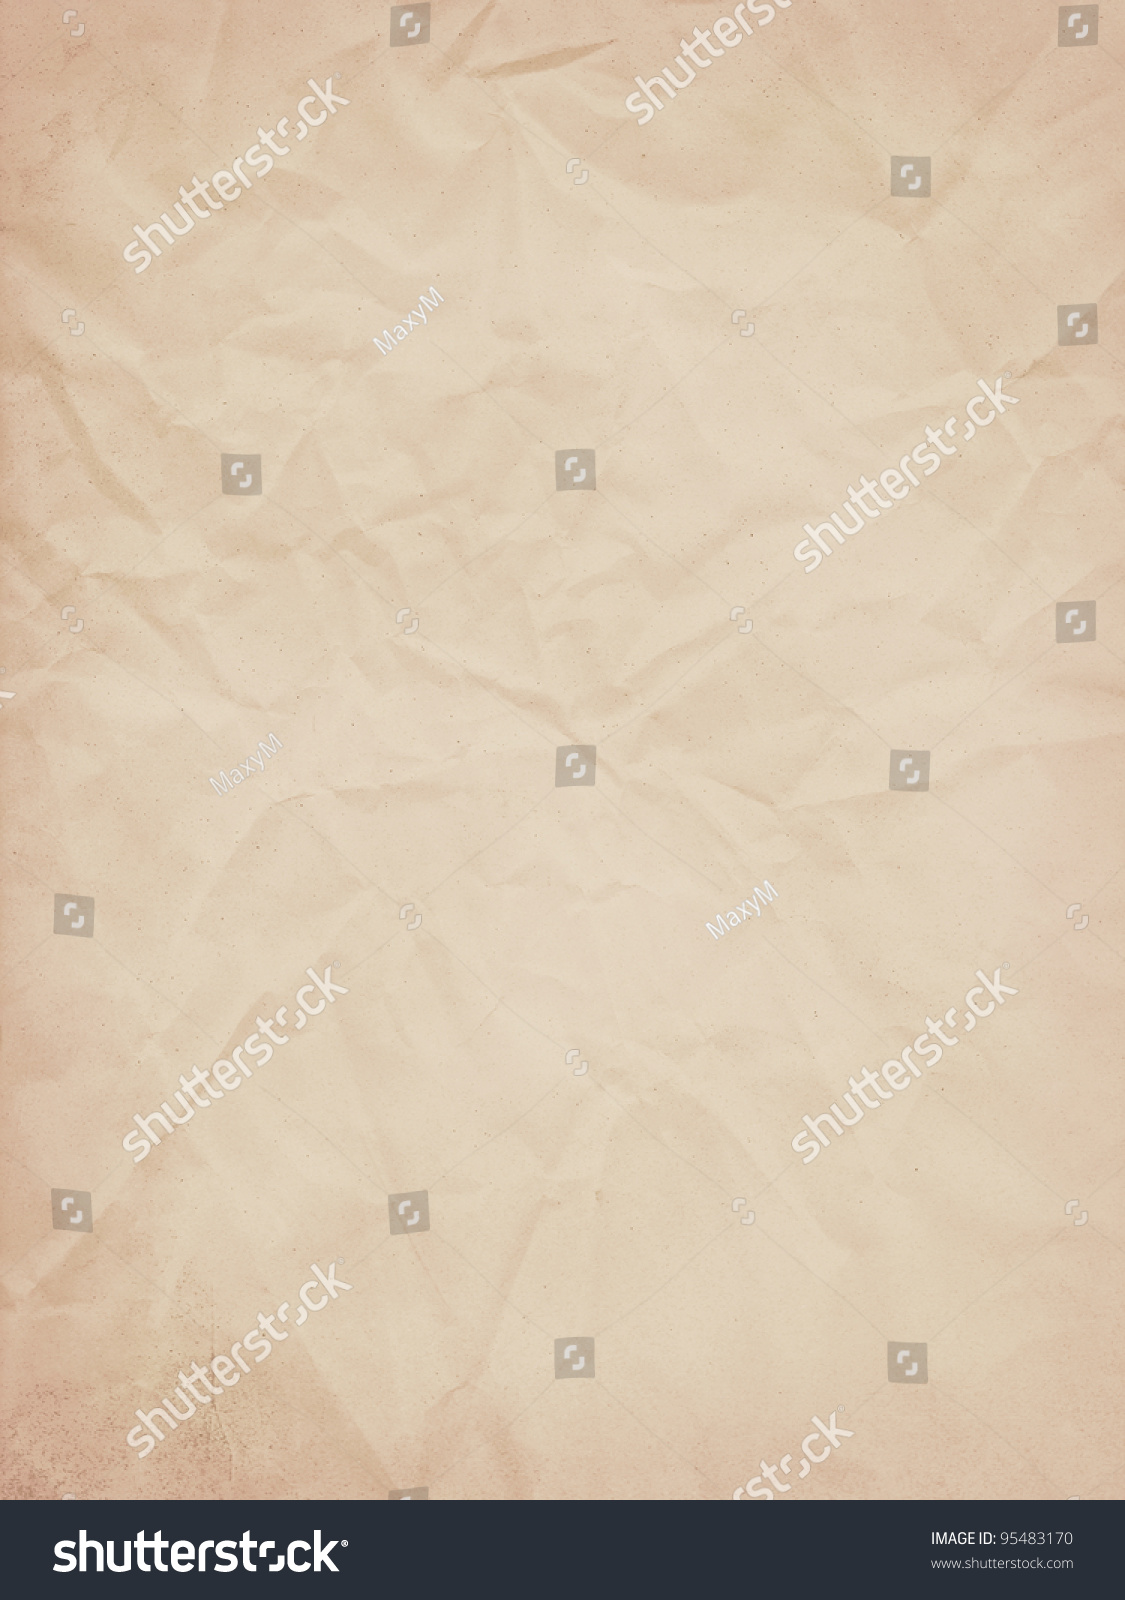 old paper template stock illustration 95483170 - shutterstock, Powerpoint templates